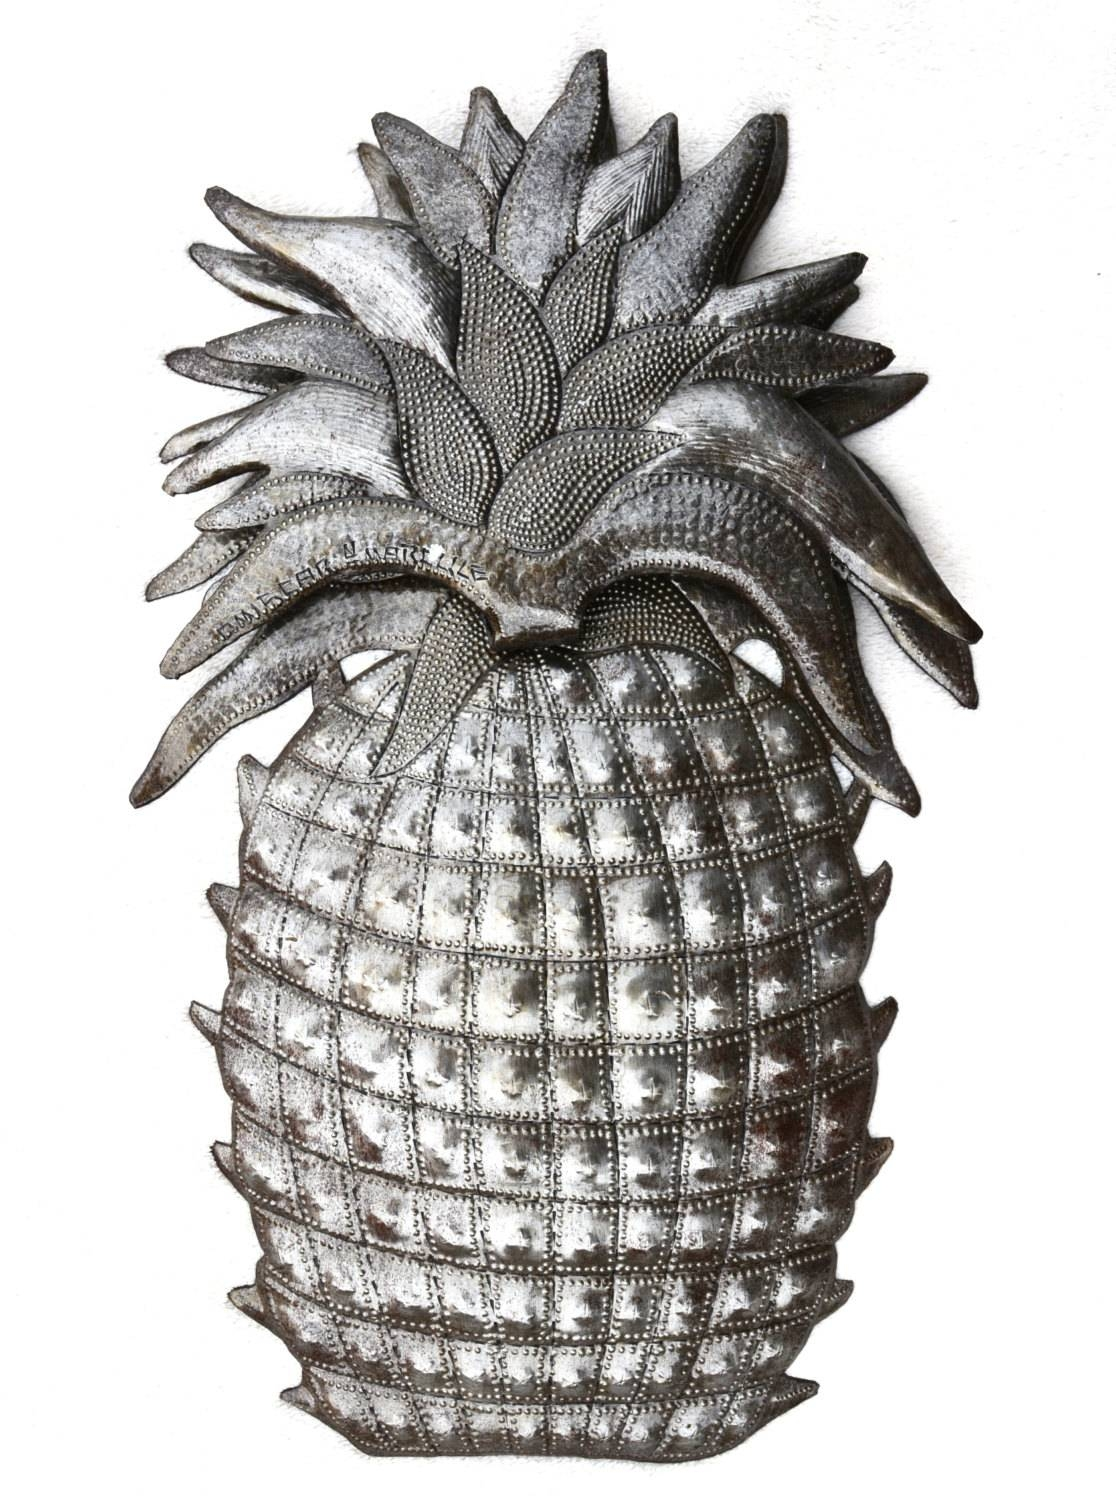 Pineapple, Welcome Home Wall Decor, Recycled Haitian Metal Steel Pertaining To Recent Pineapple Metal Wall Art (View 20 of 20)